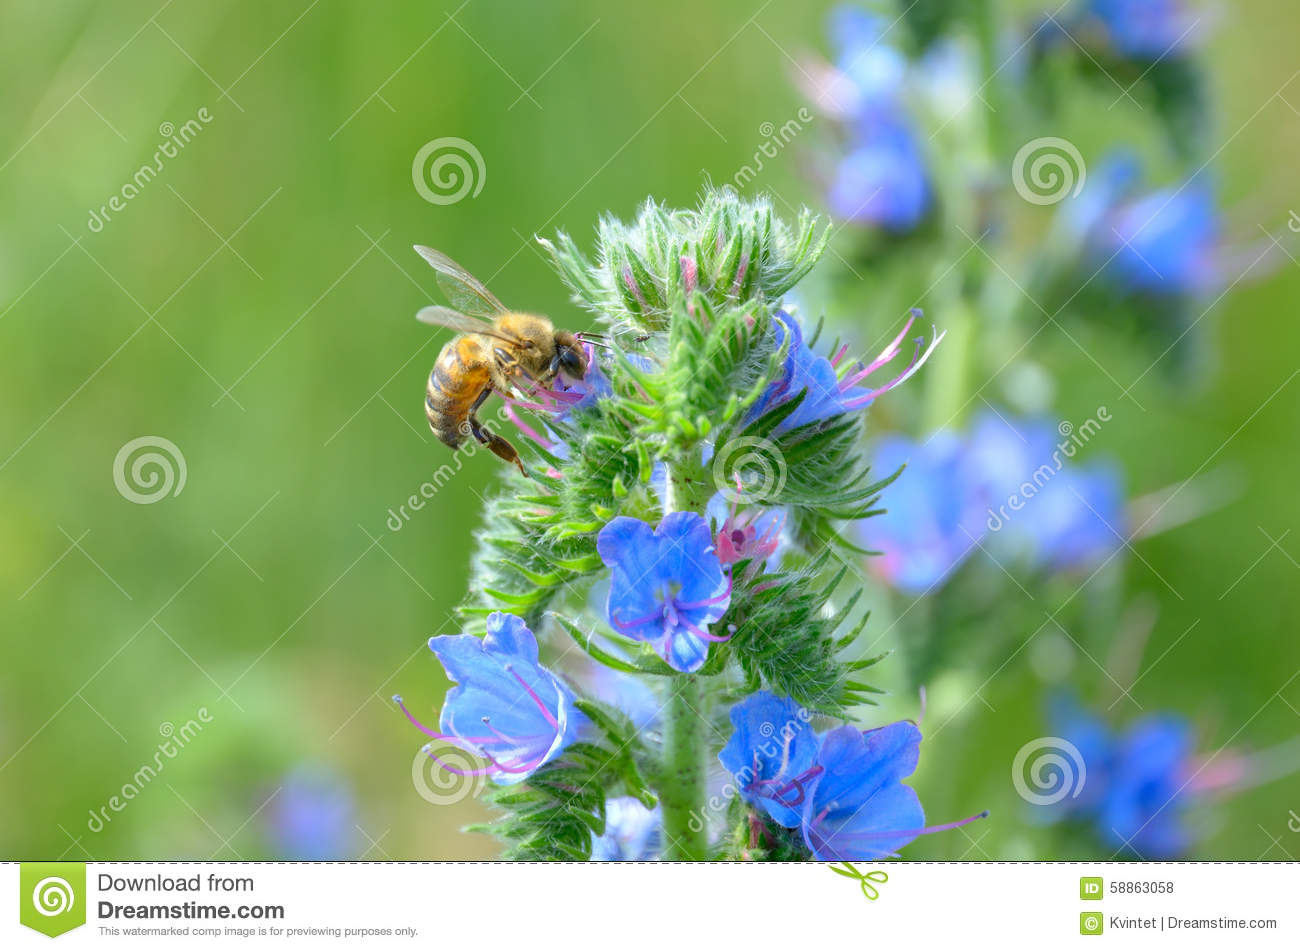 The bee and plant echium vulgare with blue flowers stock photo download the bee and plant echium vulgare with blue flowers stock photo image of echium izmirmasajfo